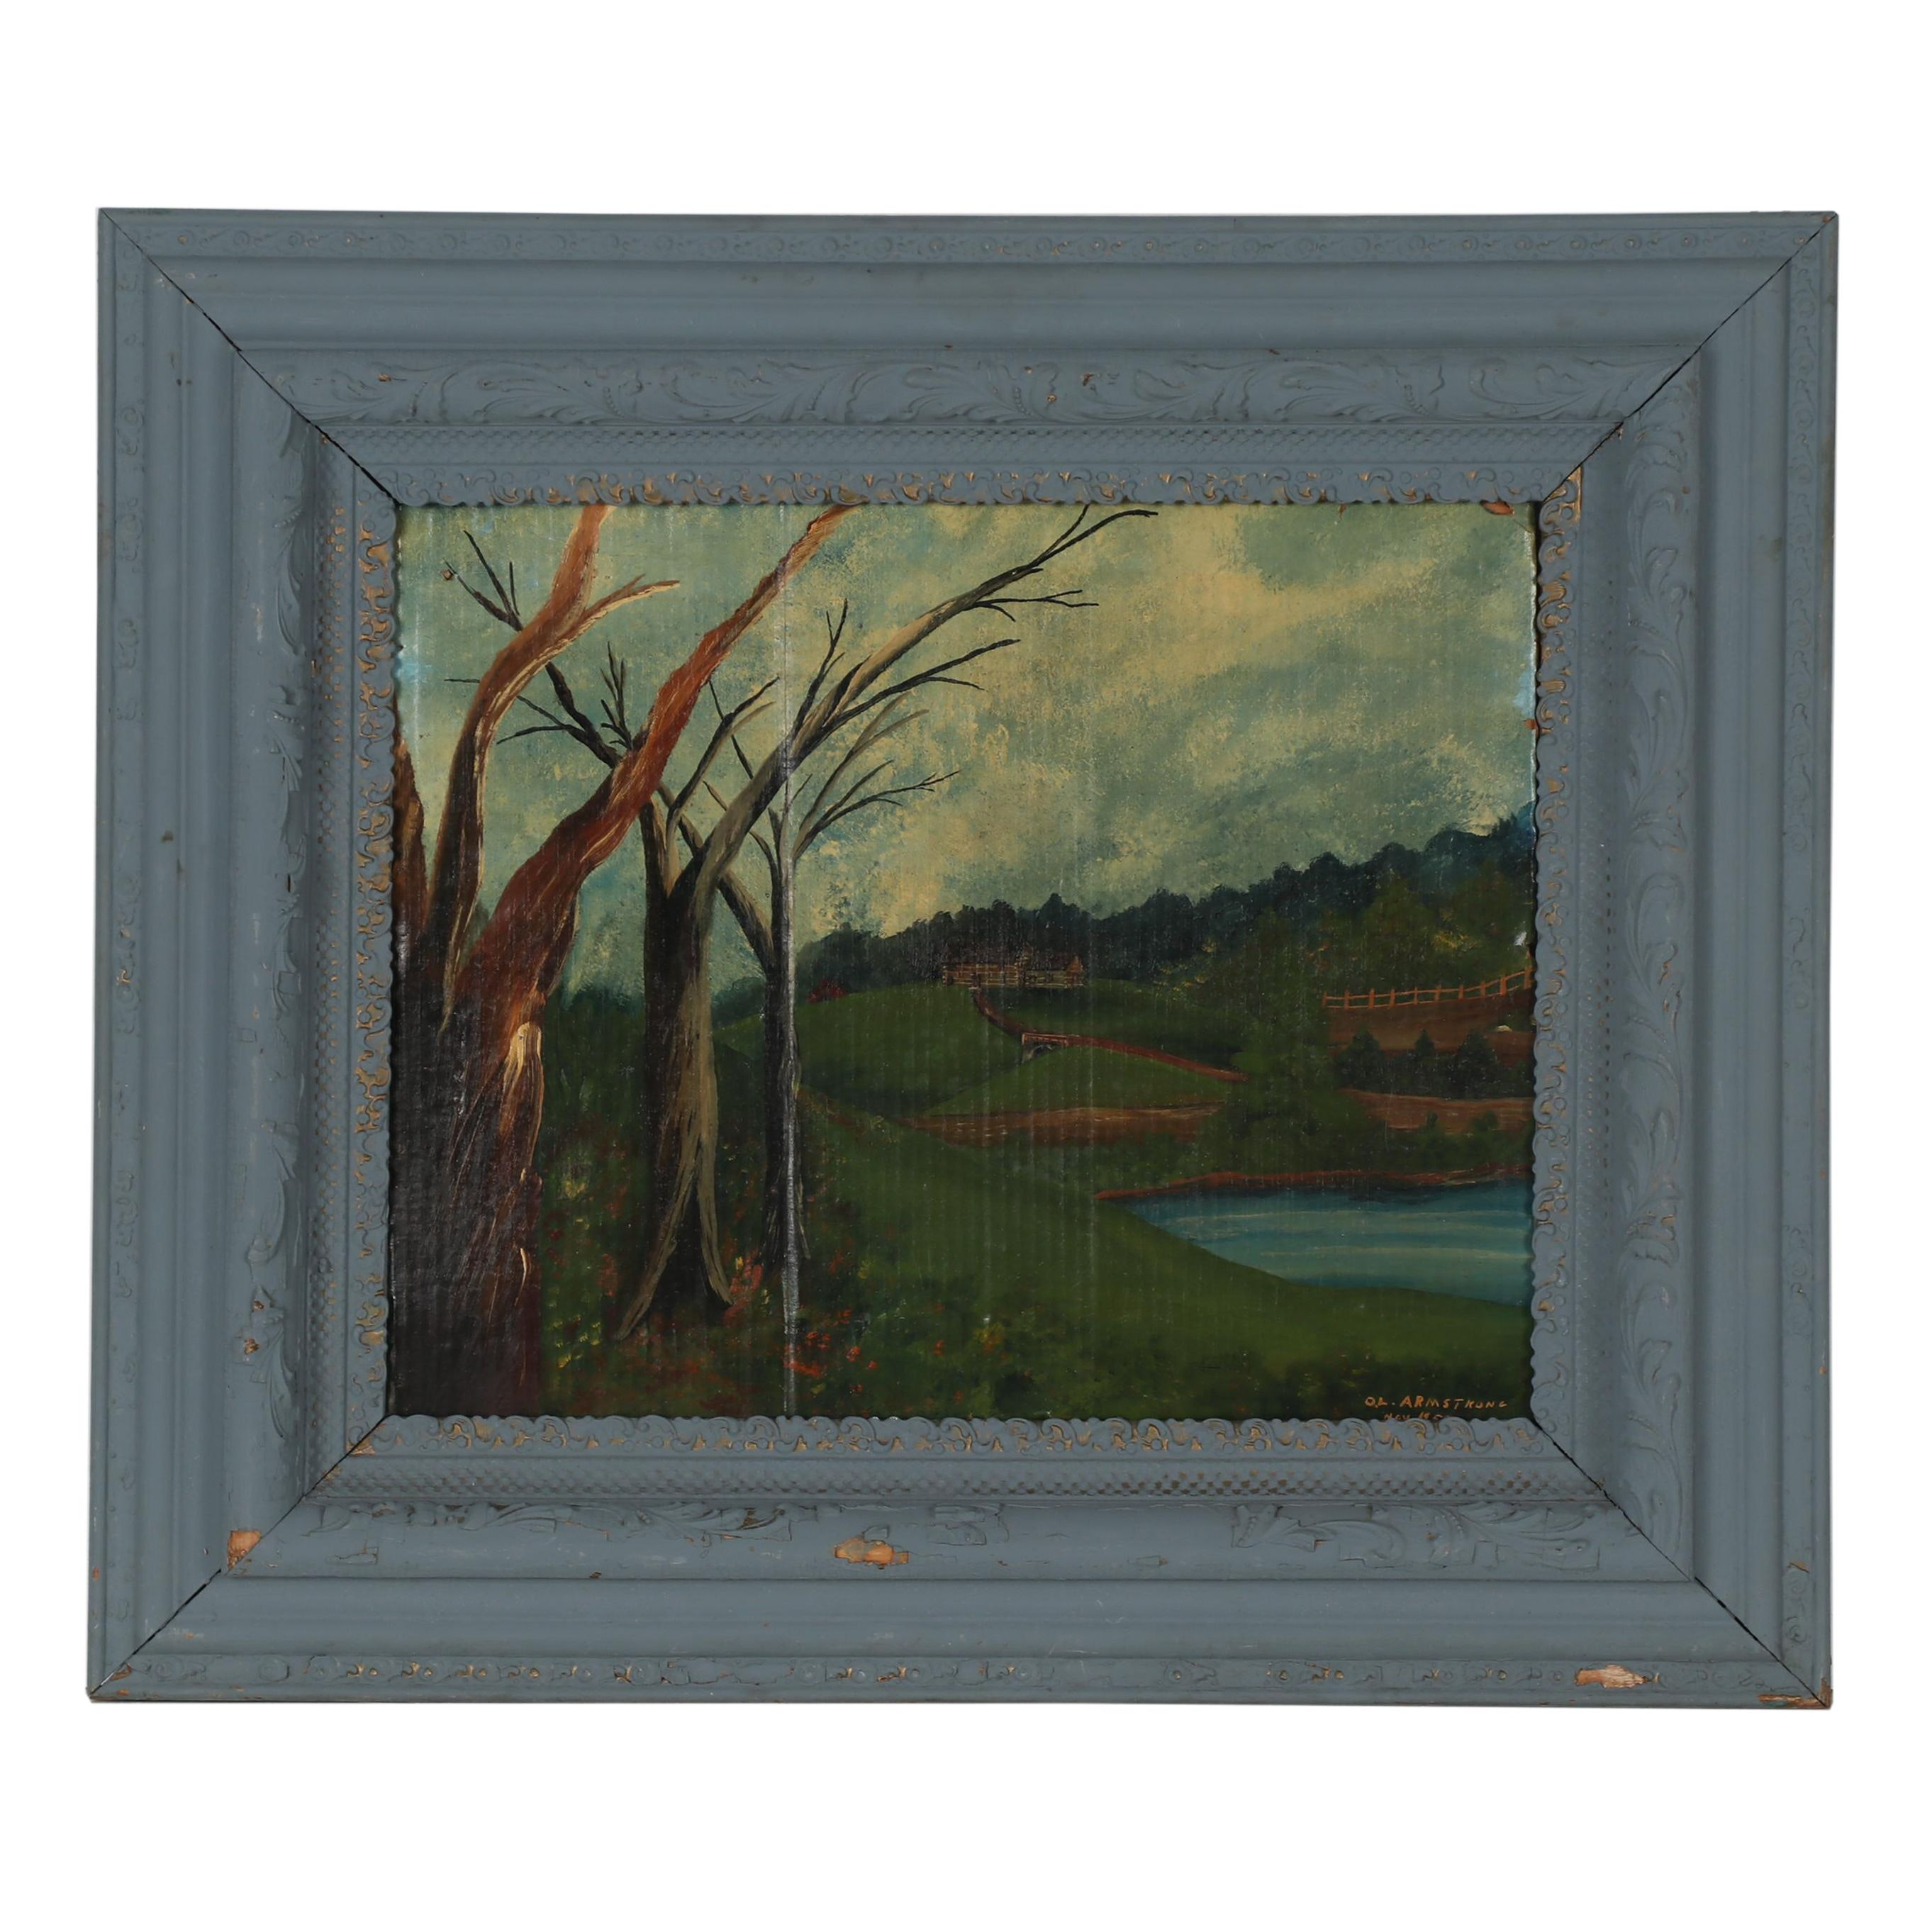 O.L. Armstrong 1958 Oil Painting of Rural Landscape